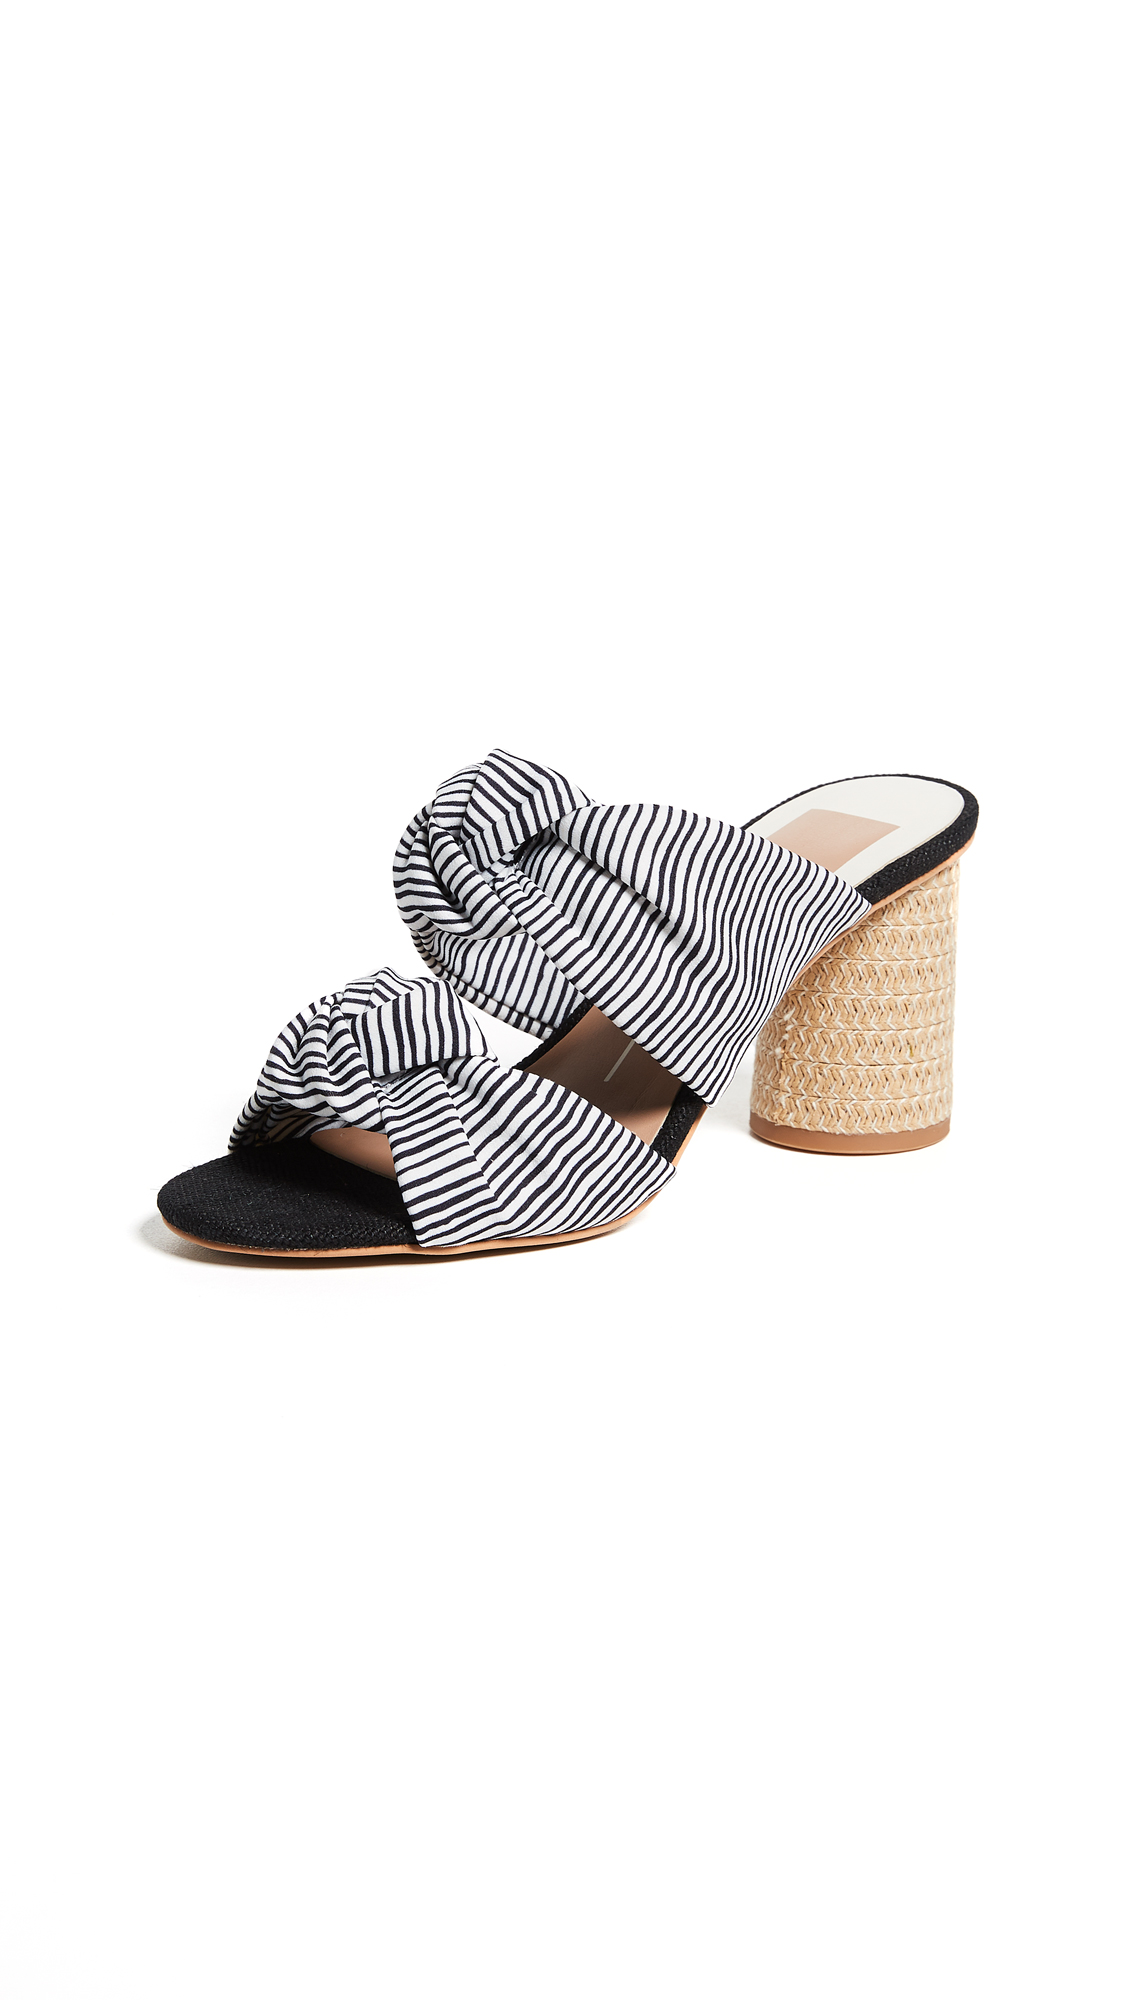 Dolce Vita Jene Double Strap Sandals - White Stripe